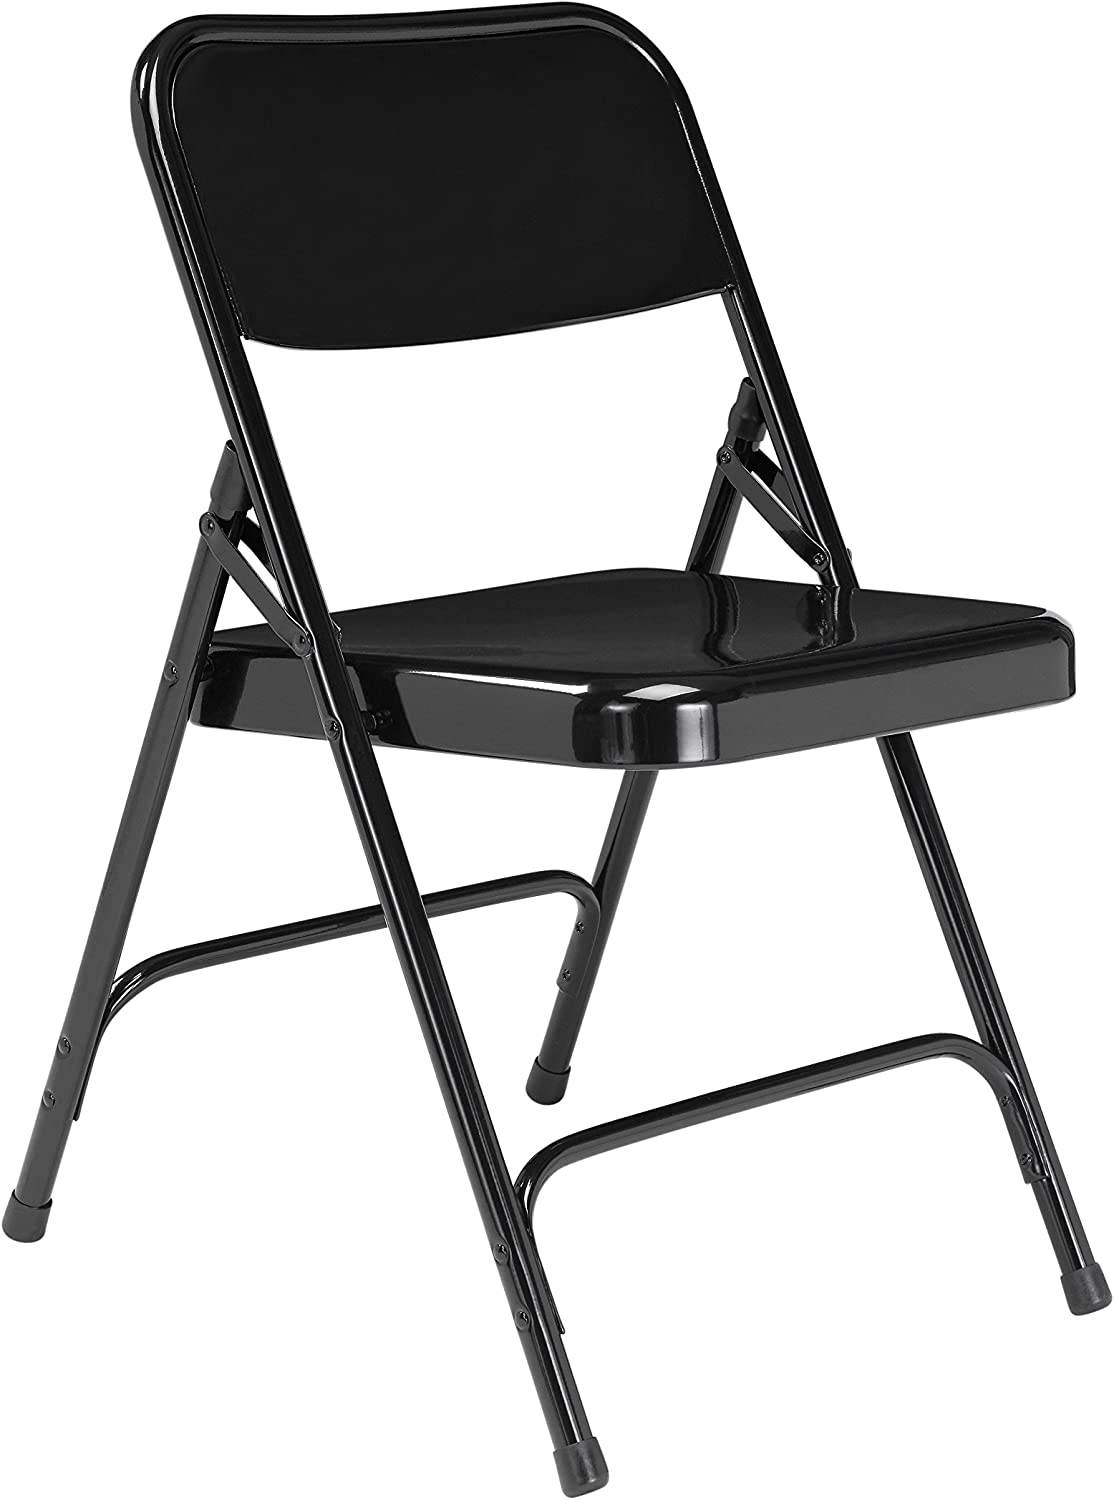 National Public Seating 200 Series All Steel Premium Folding Chair with Double Brace, 480-Pound Capacity, Black, Carton of 4